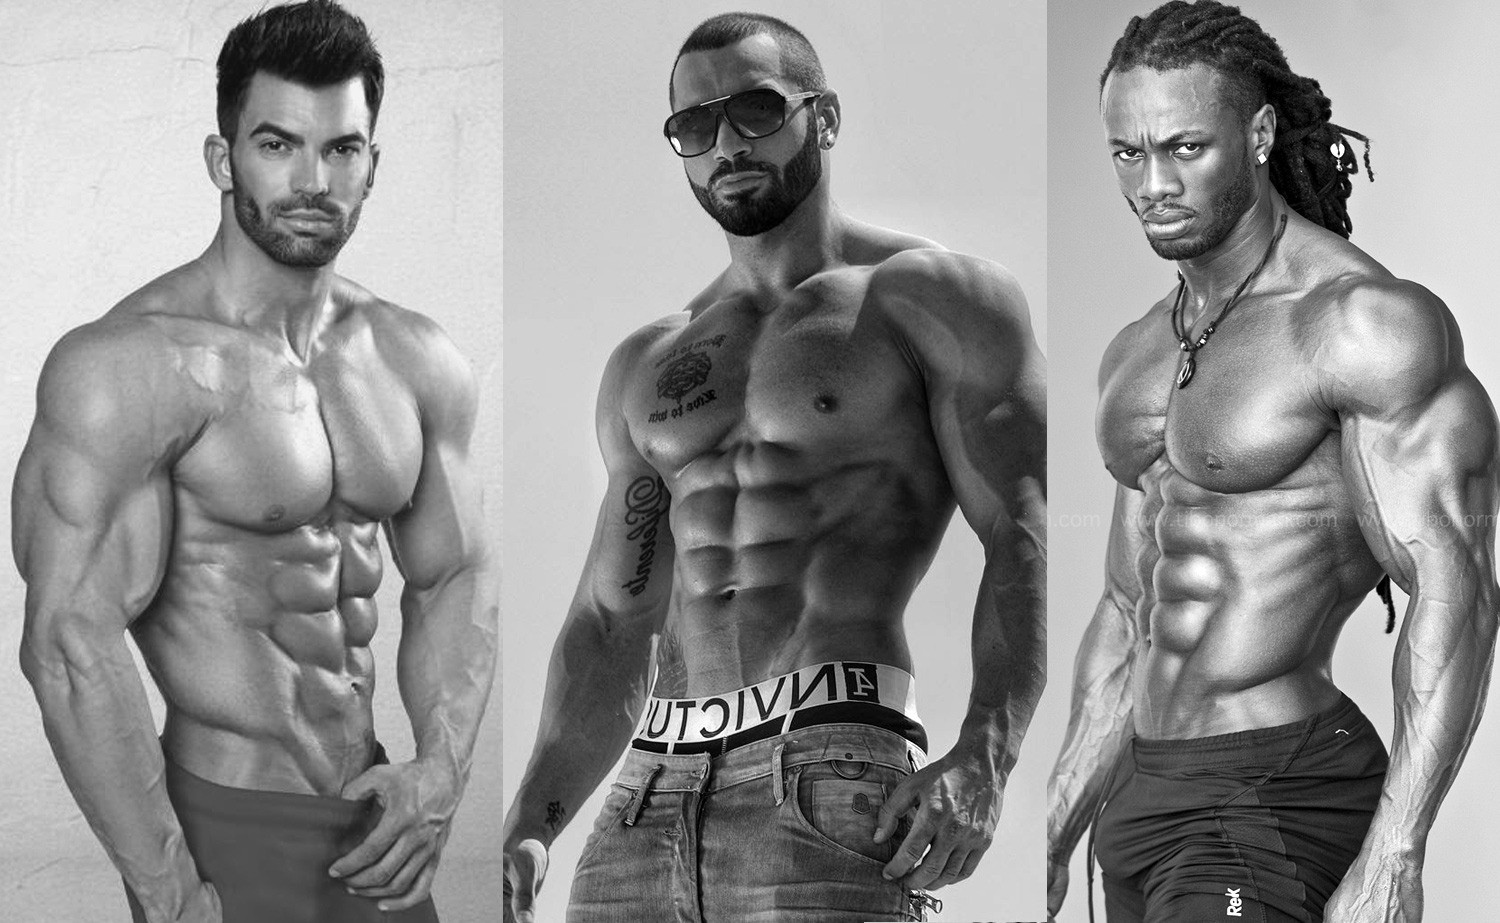 Bodybuilder men muscle models